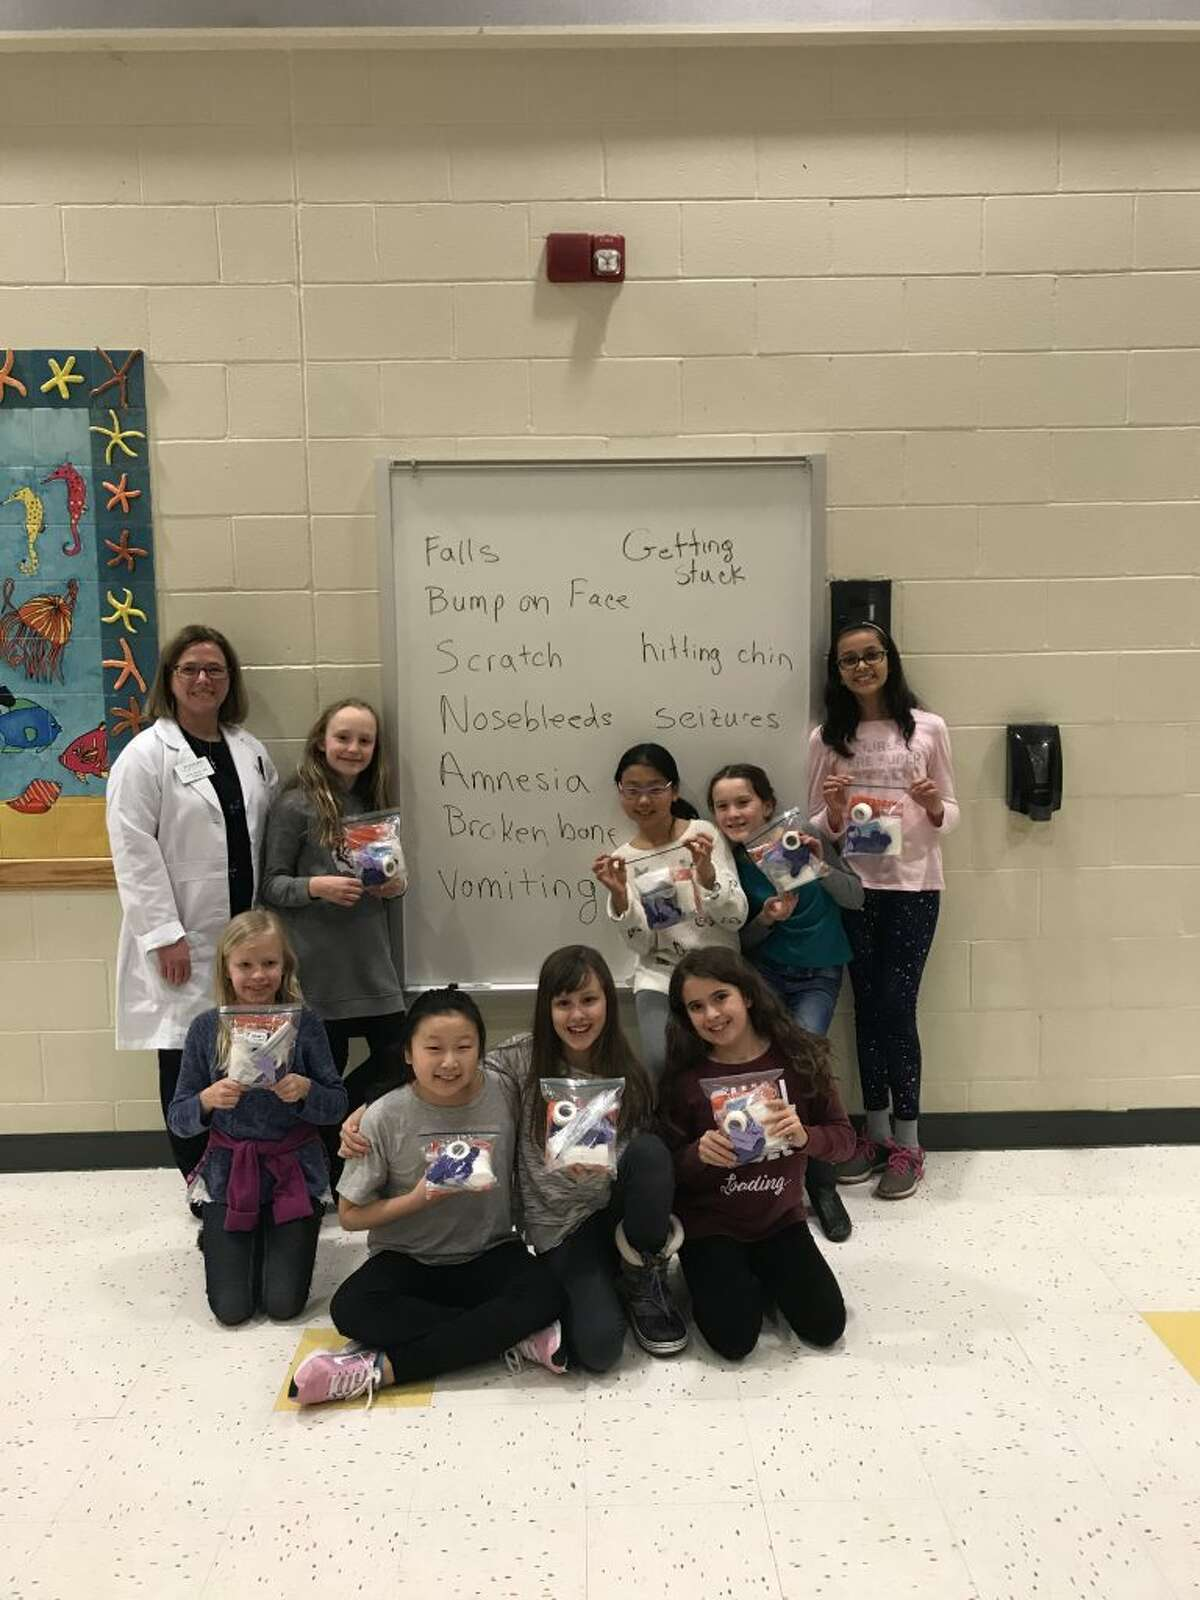 Pictured, from left to right: Dr. Lynne Savino, Camryn Art, Charlotte Fandrick, Stella Yi, Maura McGuire, Sophie Heitner, Cece Gu, Zella Bunch, and Aayushi Dabi. Not shown: Ashley Zettl and Emily Honore.